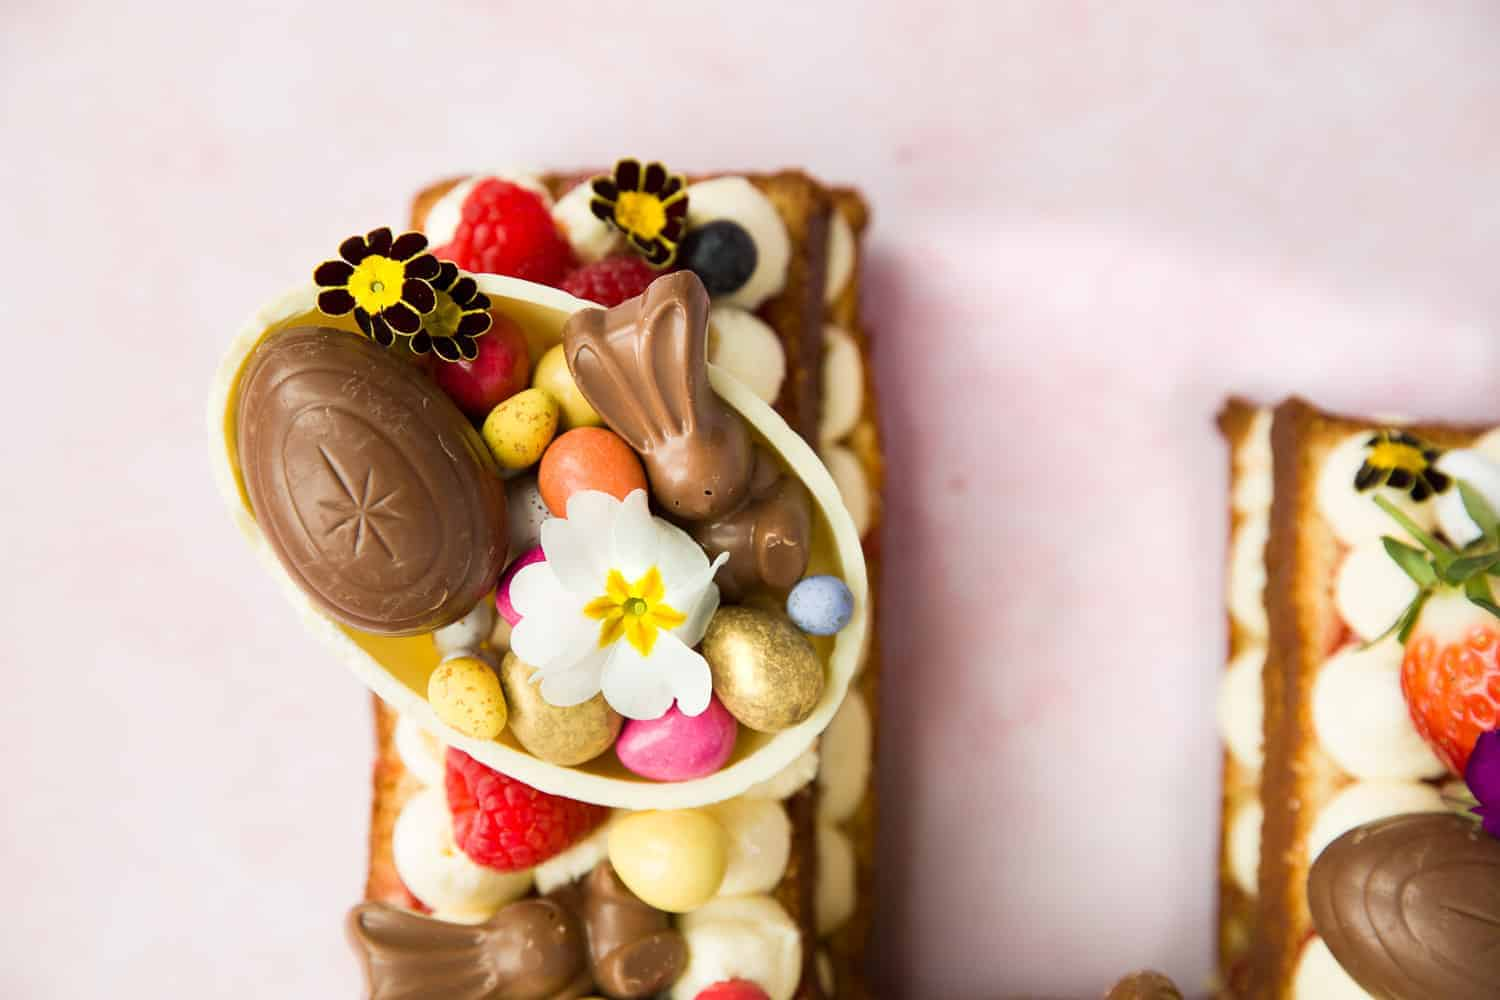 A cake topped with half a white chocolate easter egg